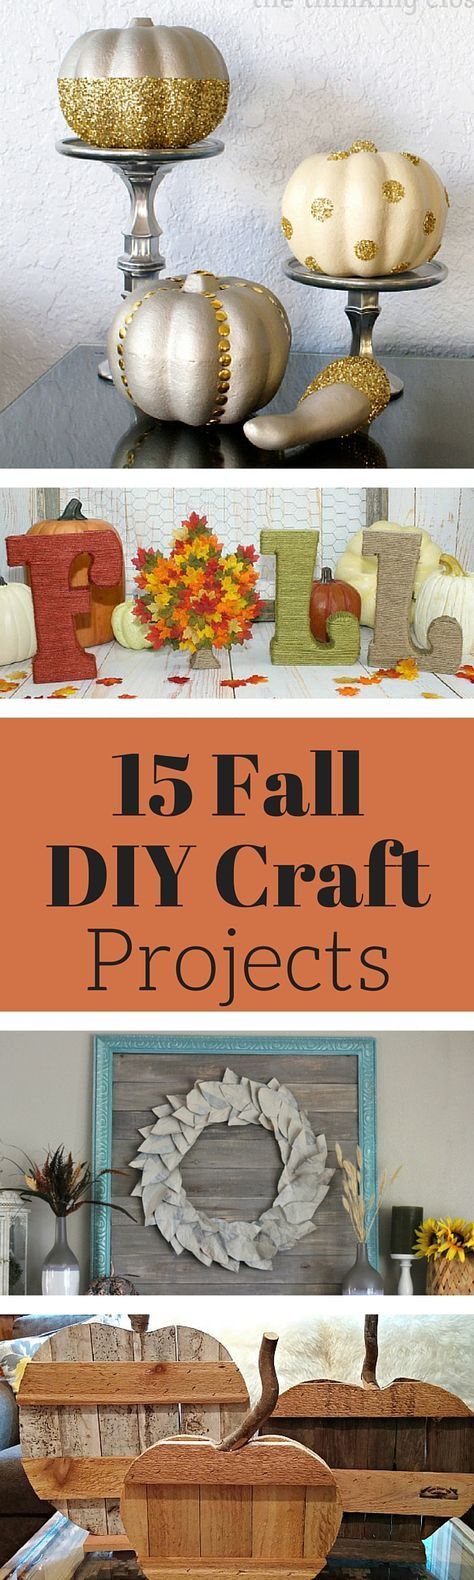 Fall Crafts and DIY Projects - Weekend Craft